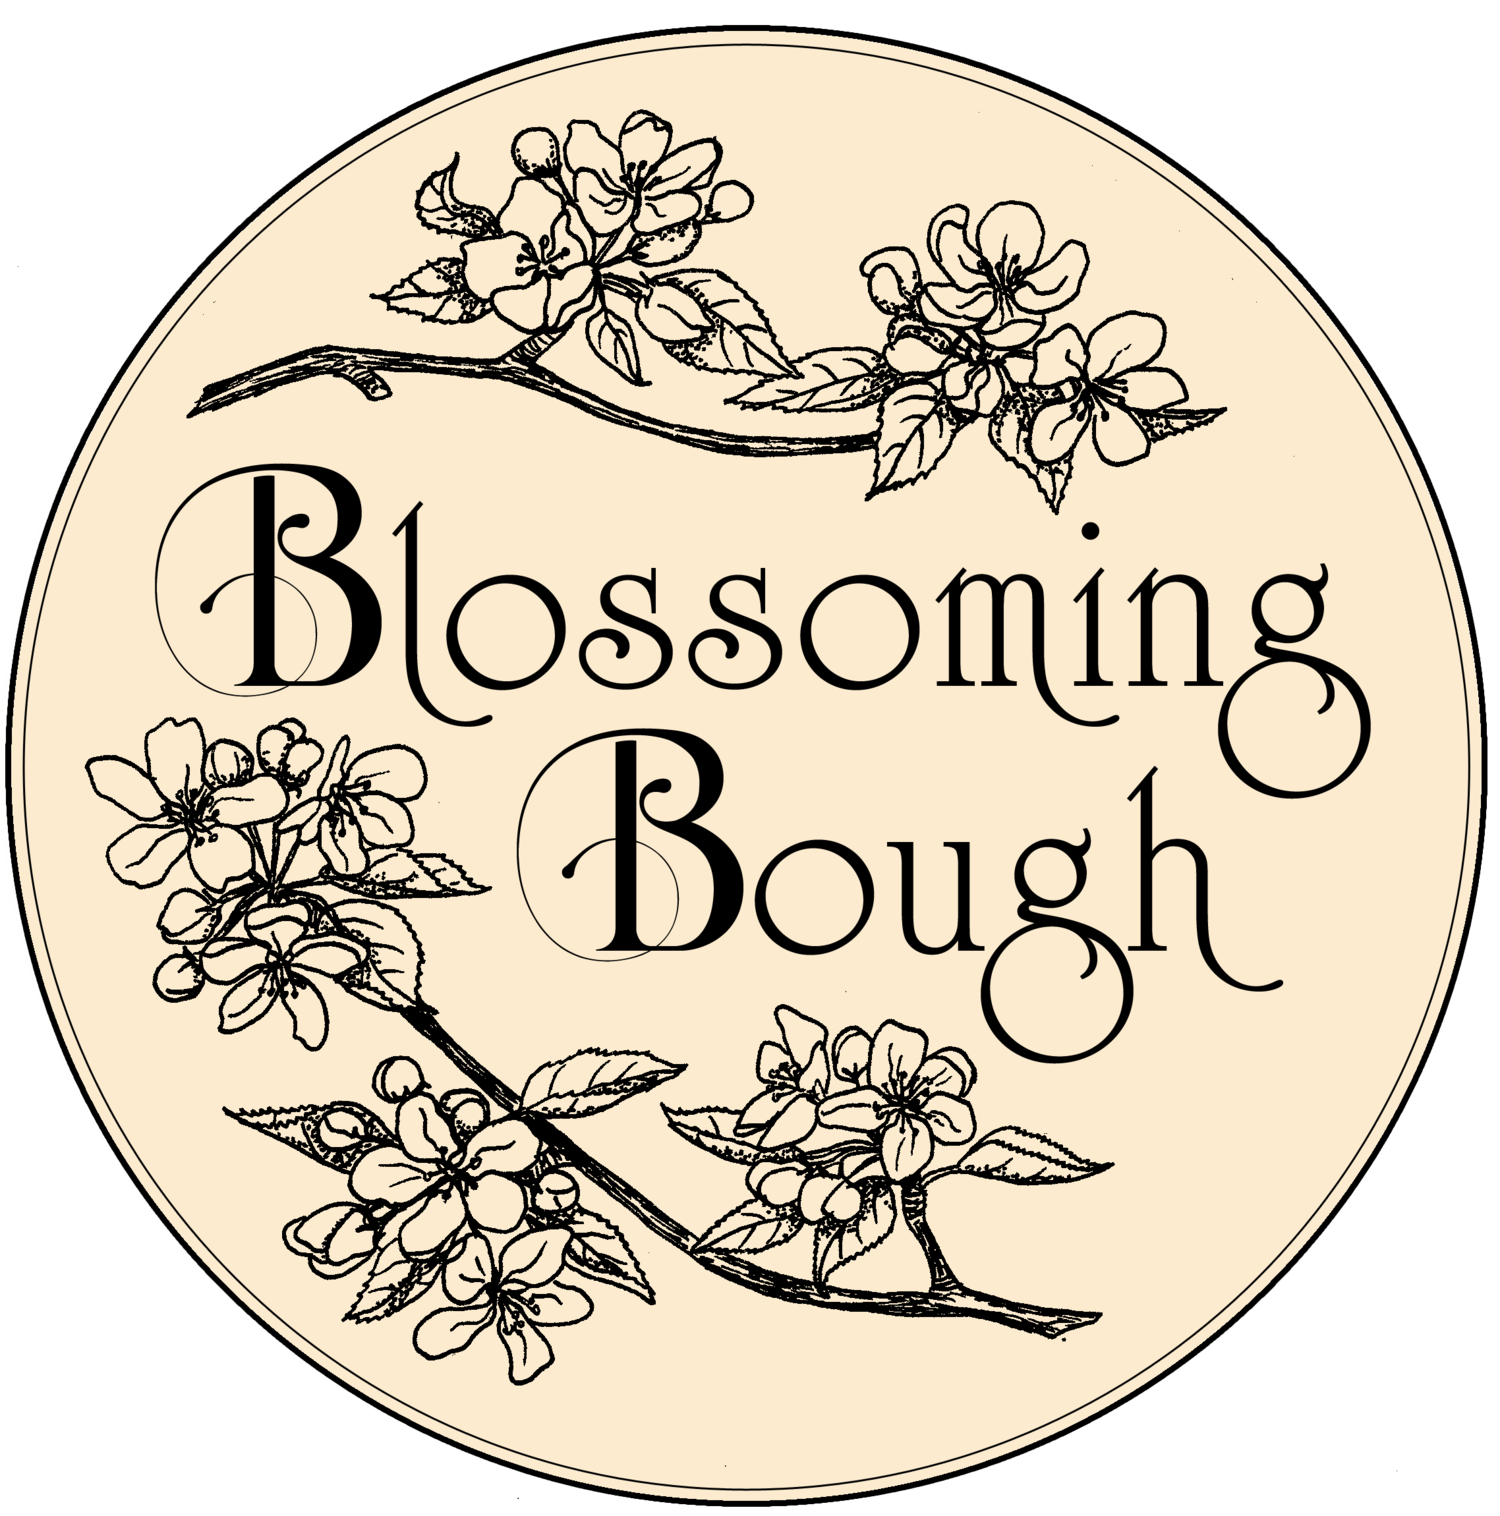 Blossoming Bough Flowers